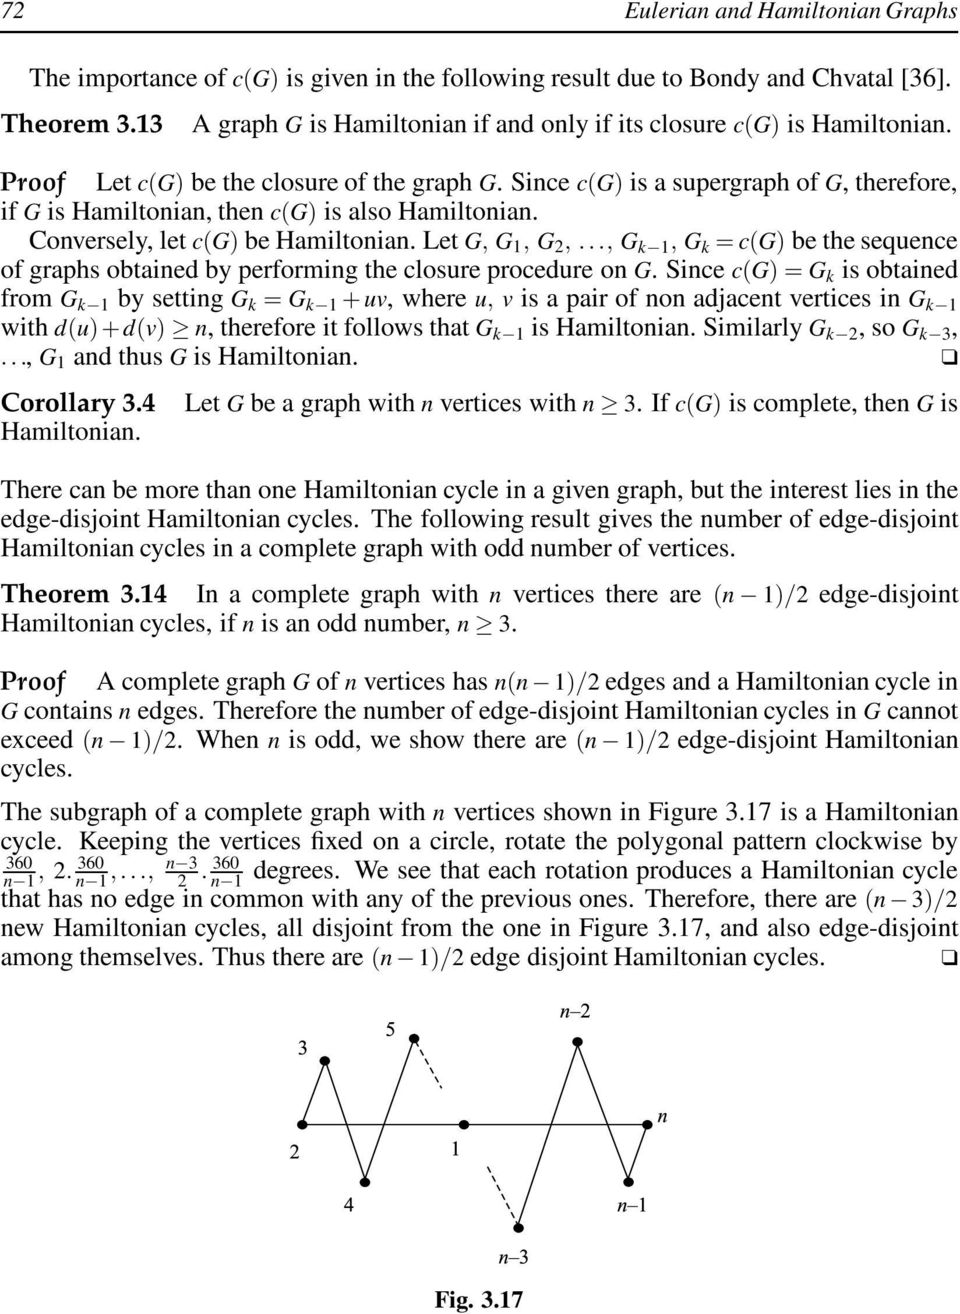 Since c(g) is a supergraph of G, therefore, if G is Hamiltonian, then c(g) is also Hamiltonian. Conversely, let c(g) be Hamiltonian. Let G, G 1, G 2,.